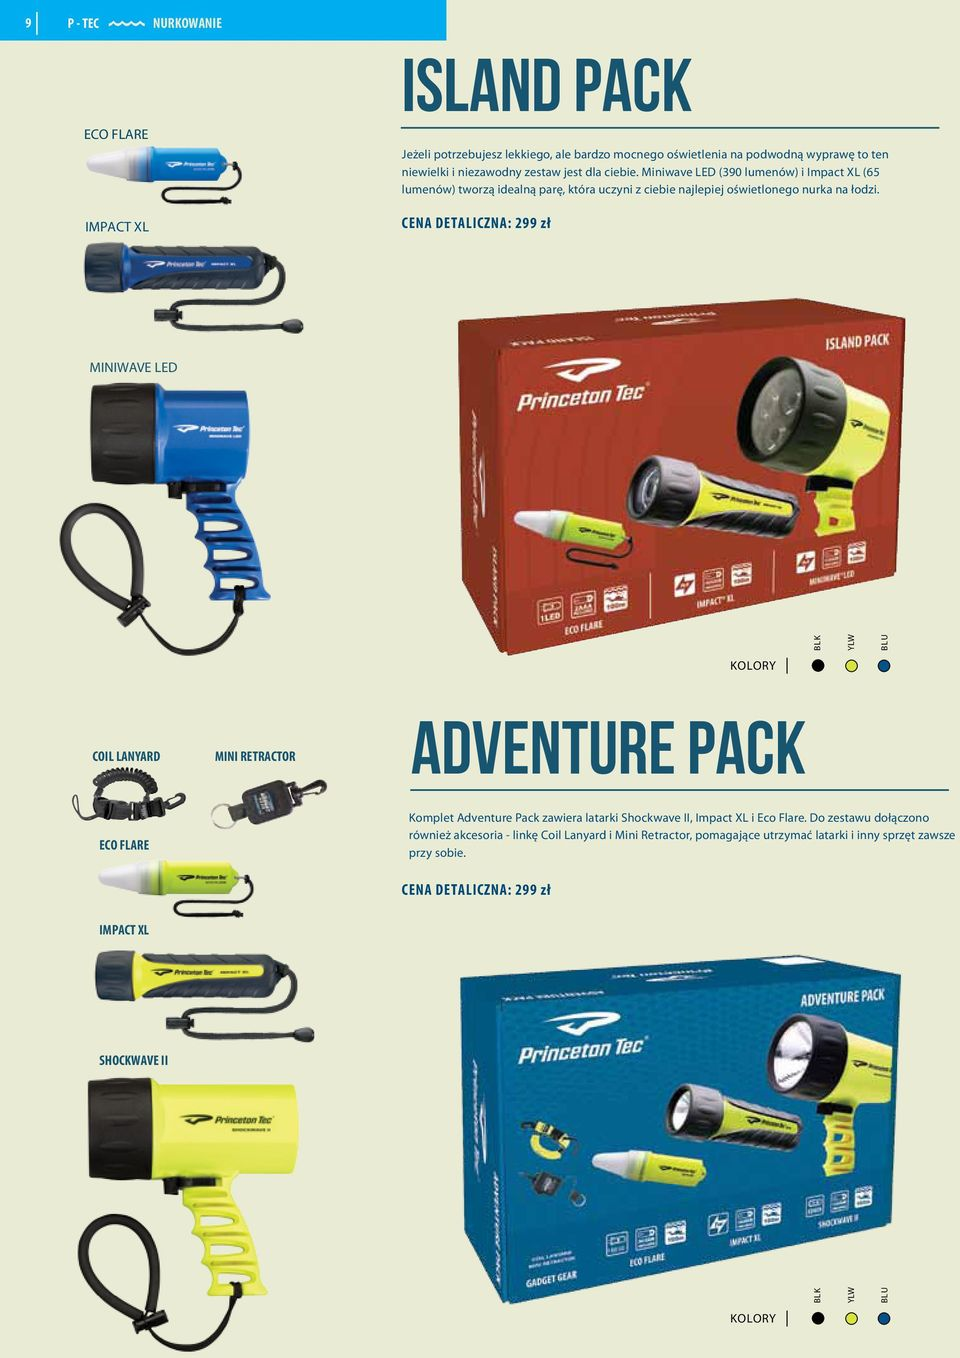 CENA DETALICZNA: 299 zł MINIWAVE LED COIL LANYARD MINI RETRACTOR ADVENTURE PACK ECO FLARE Komplet Adventure Pack zawiera latarki Shockwave II, Impact XL i Eco Flare.